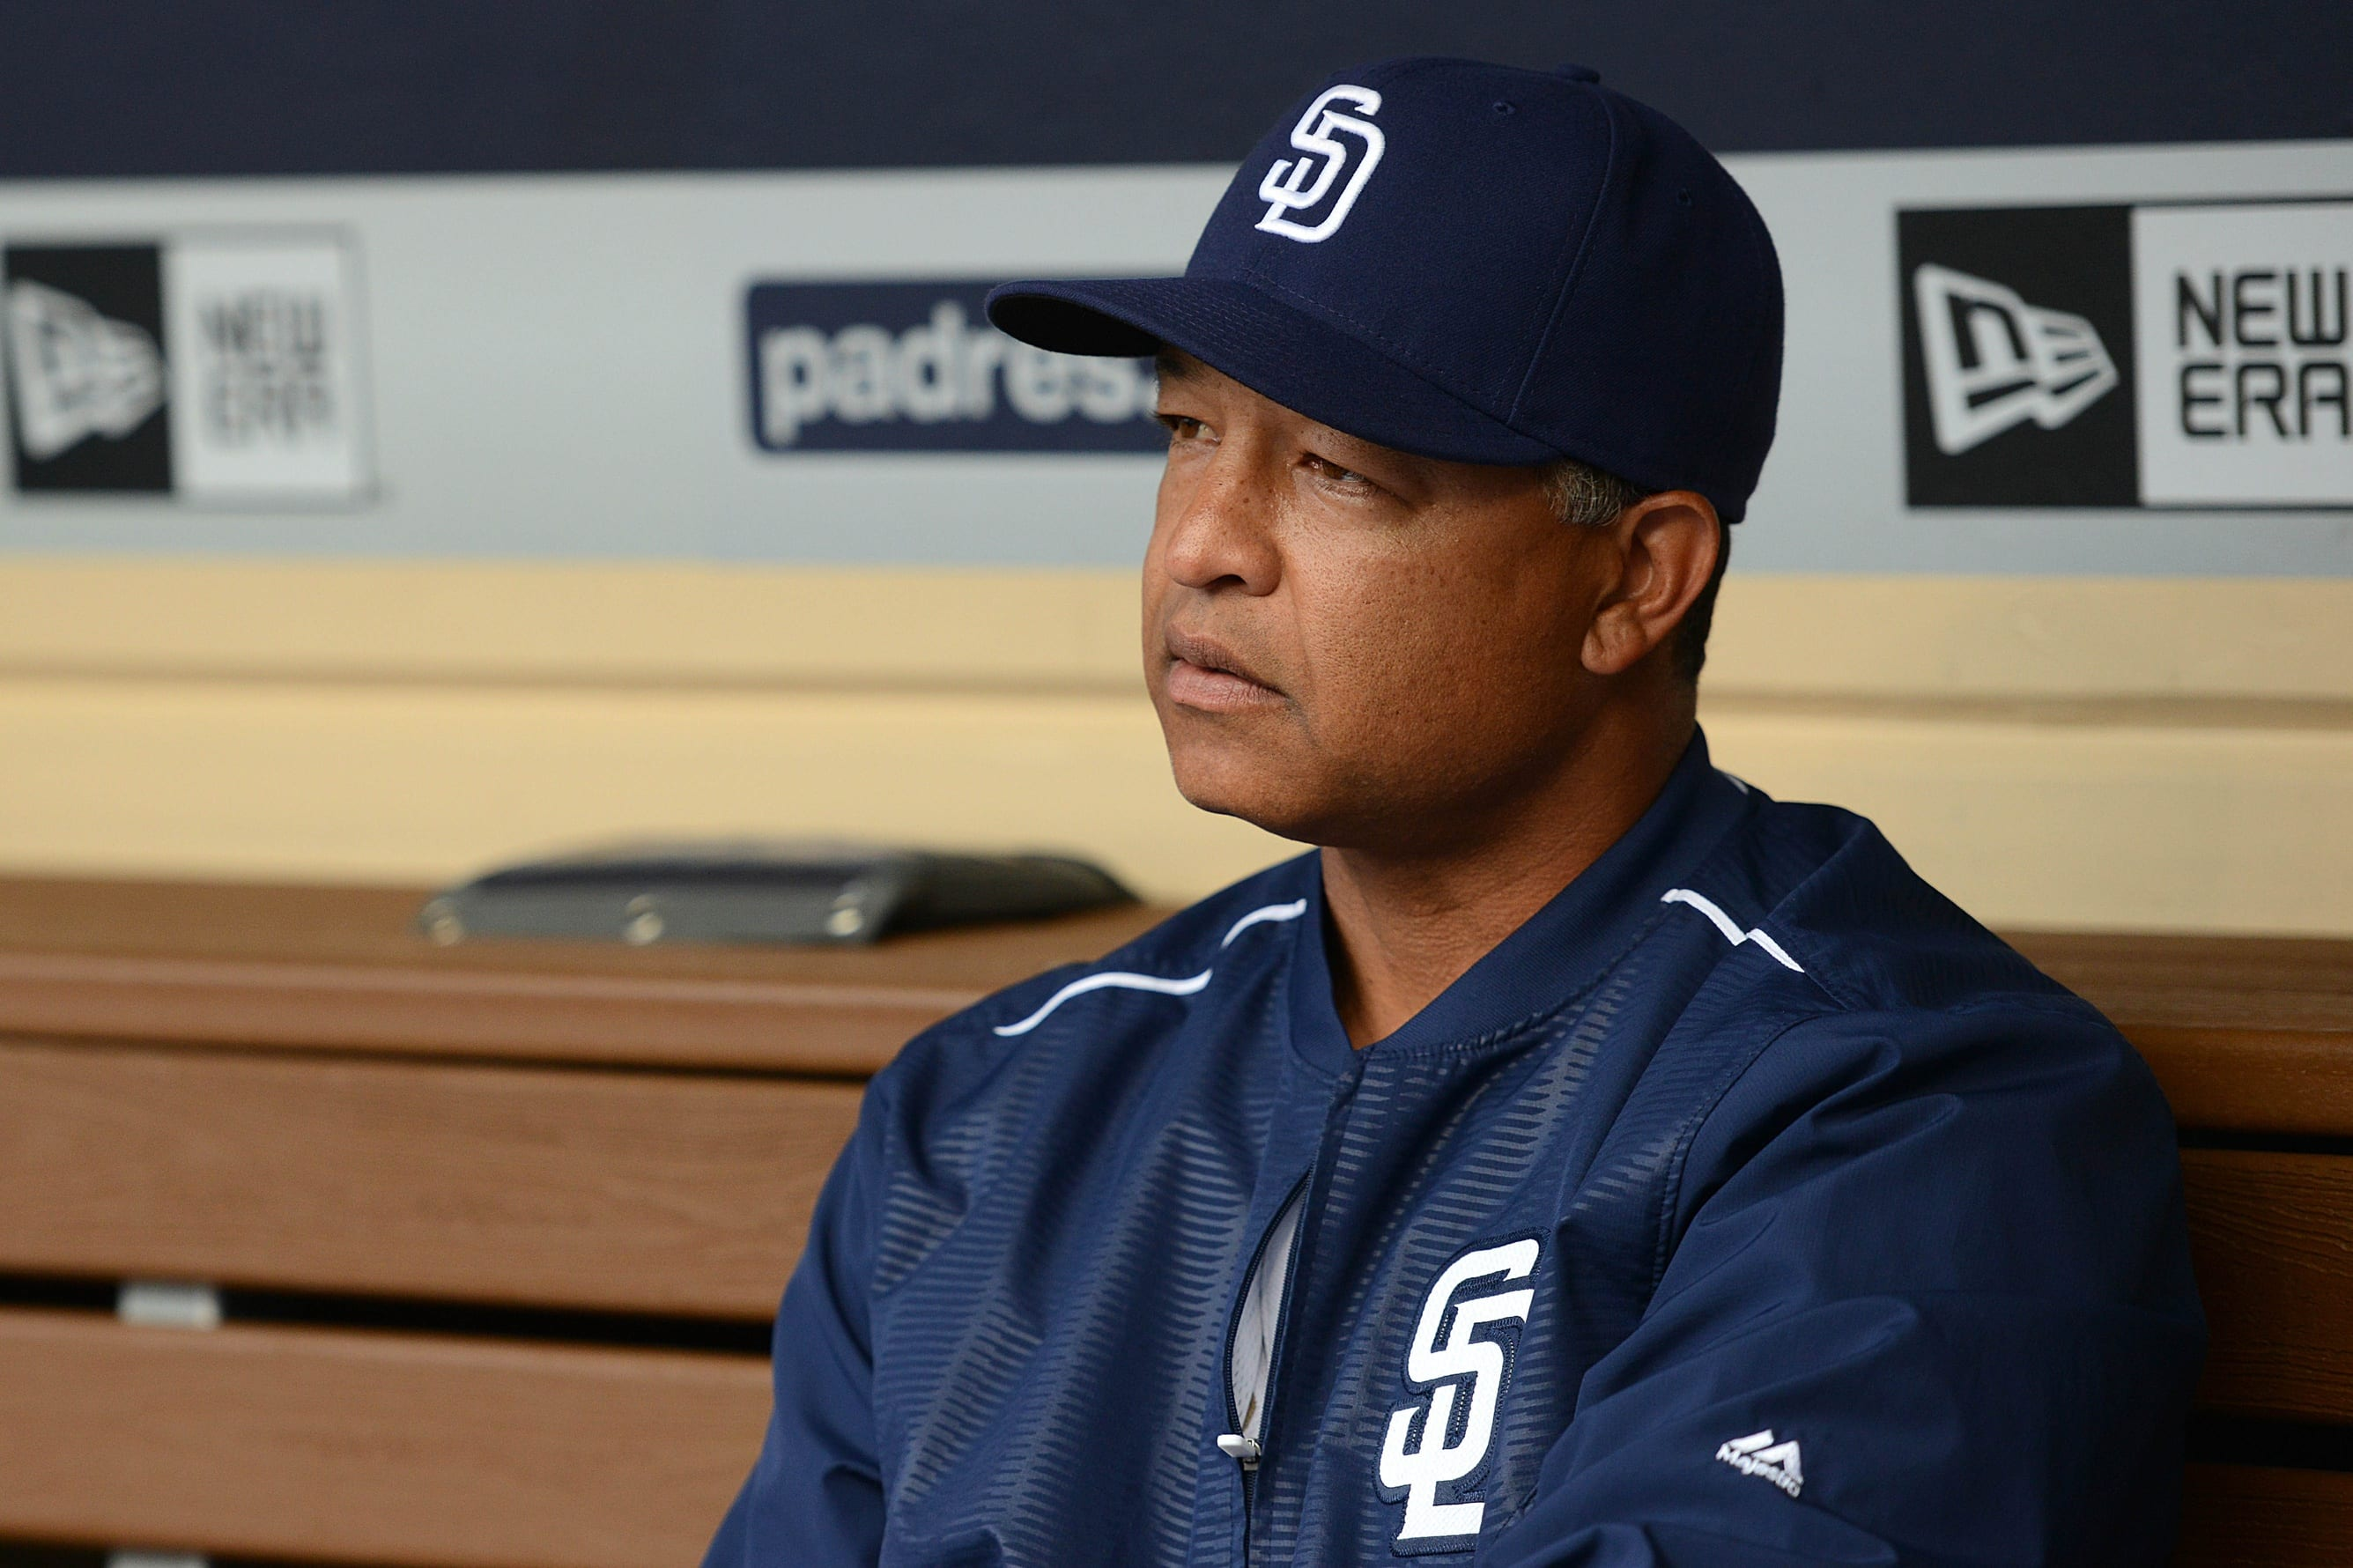 Dodgers Rumors: Dave Roberts Will Be Part Of Staff Even If Not Hired As Manager